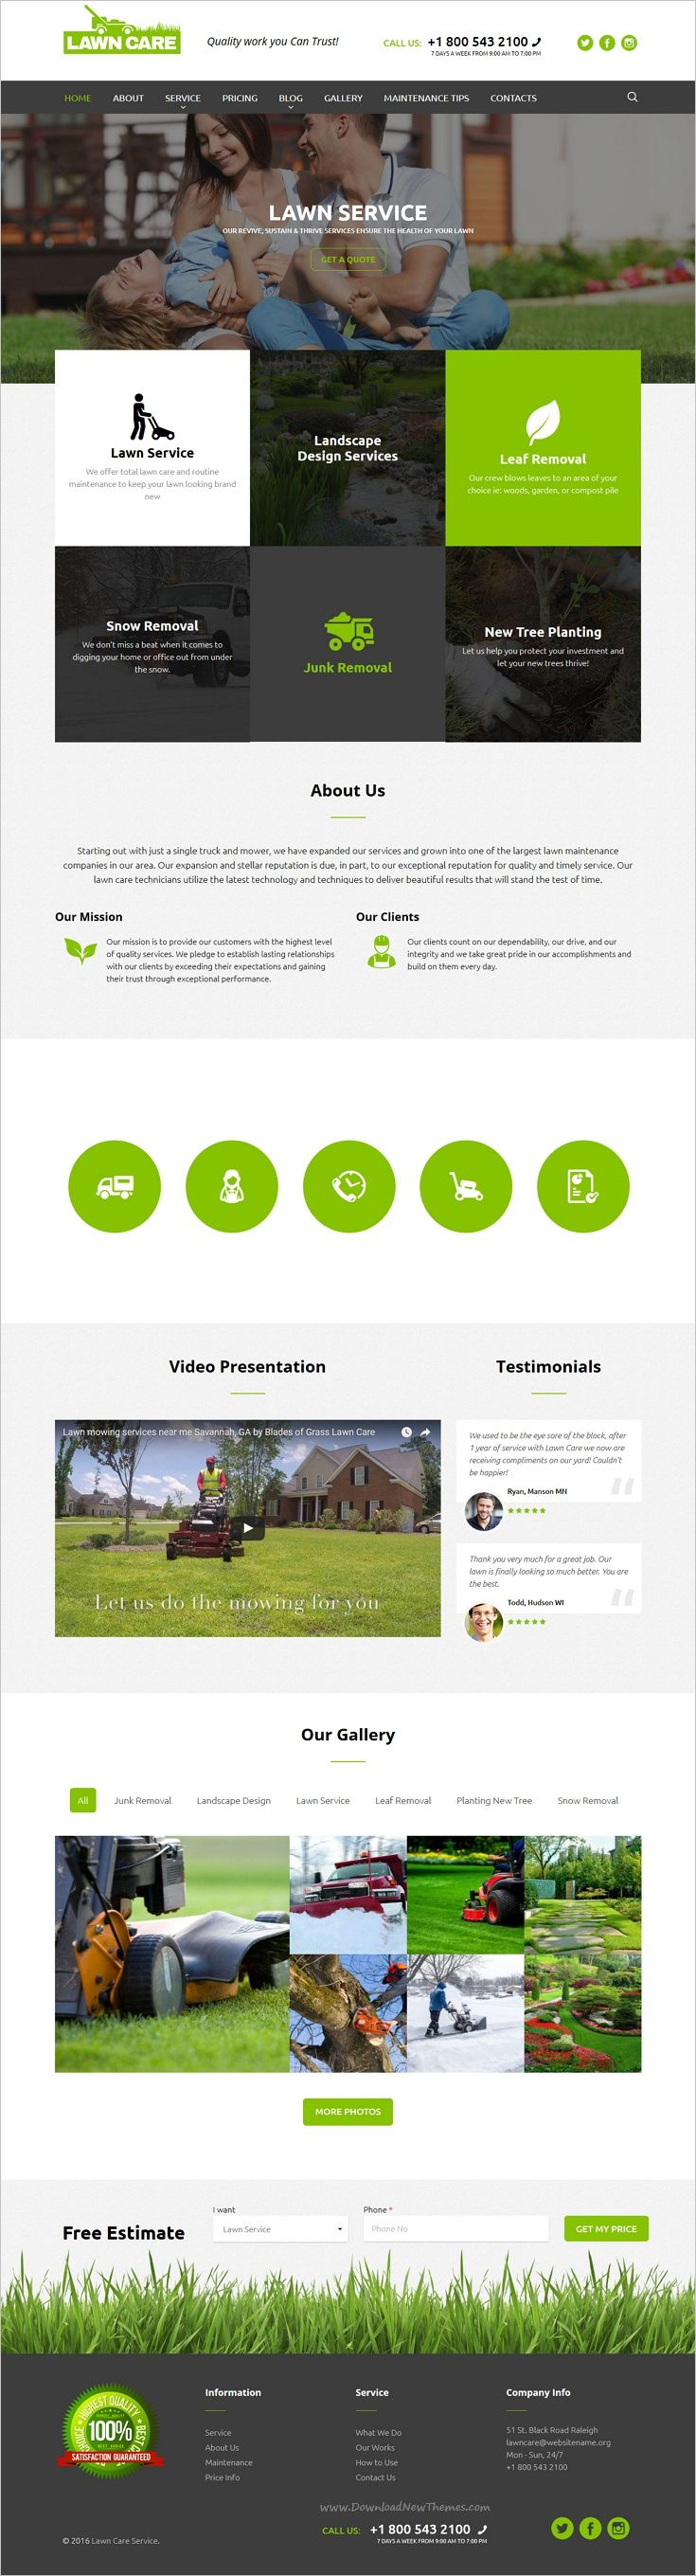 We Re Award Winning Web Design Agency Having Team Of Professionals Creatives Who Committed To Garden Design Layout Landscaping Lawn Care Garden Design Layout